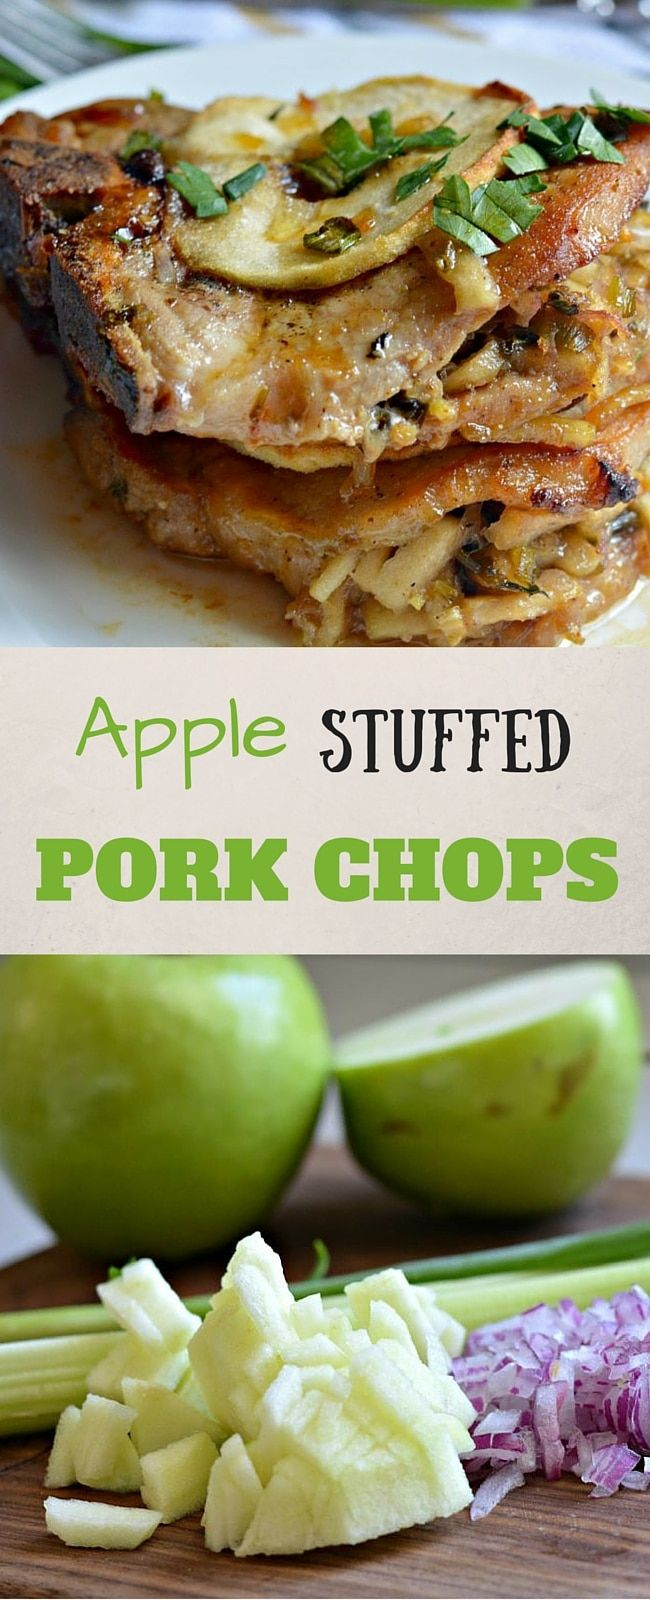 Best 25+ Apple stuffed pork chops ideas on Pinterest